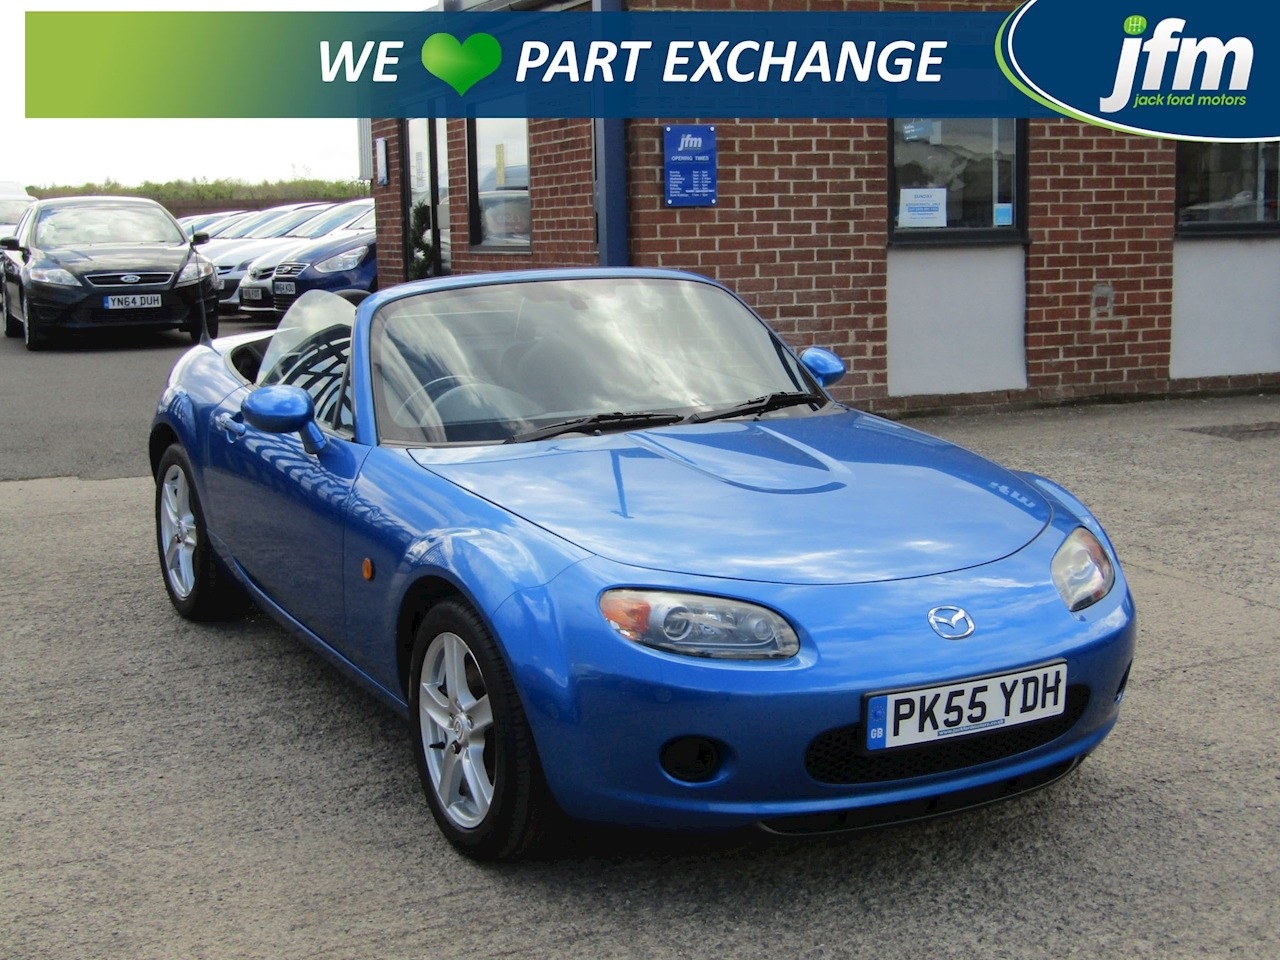 MX-5 1.8 Convertible 2dr Petrol Manual (174 g/km, 124 bhp) Convertible 1.8 Manual Petrol